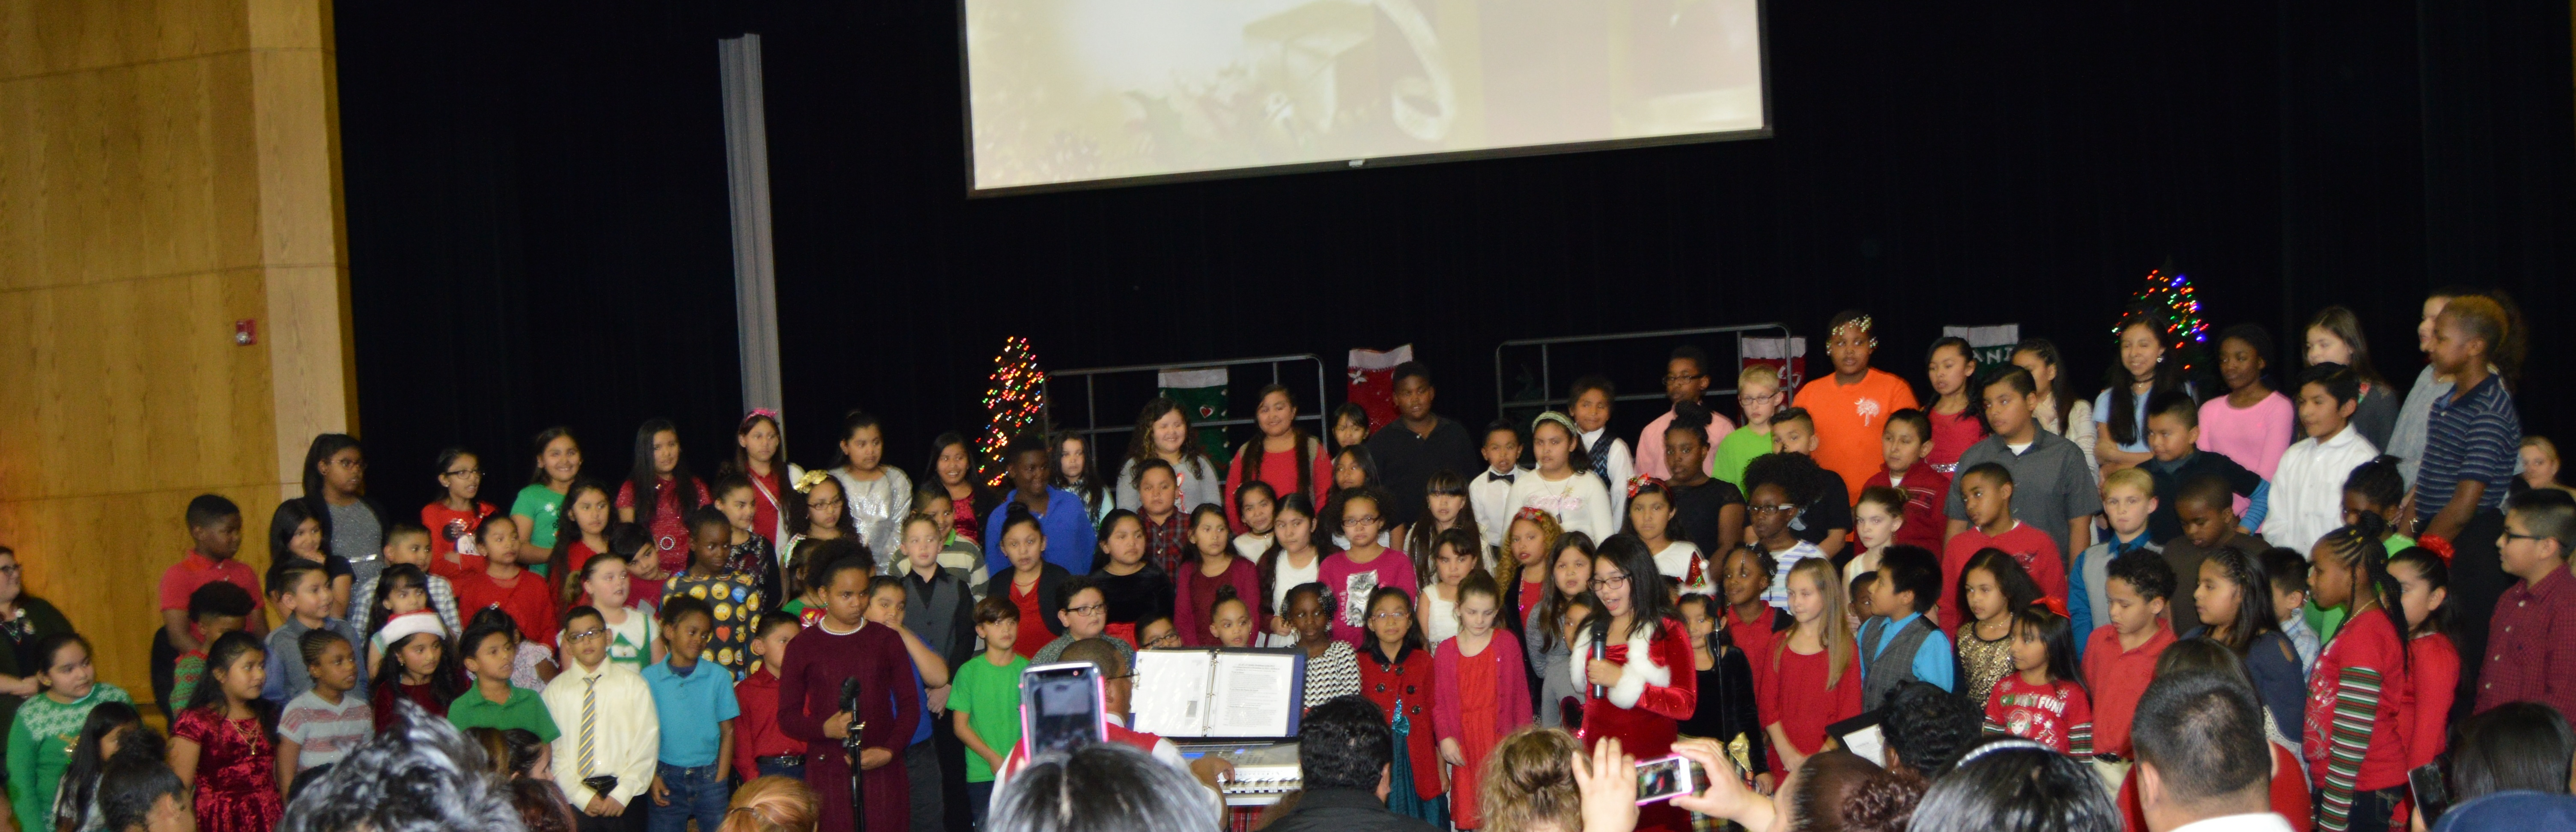 Holiday Concert 2017